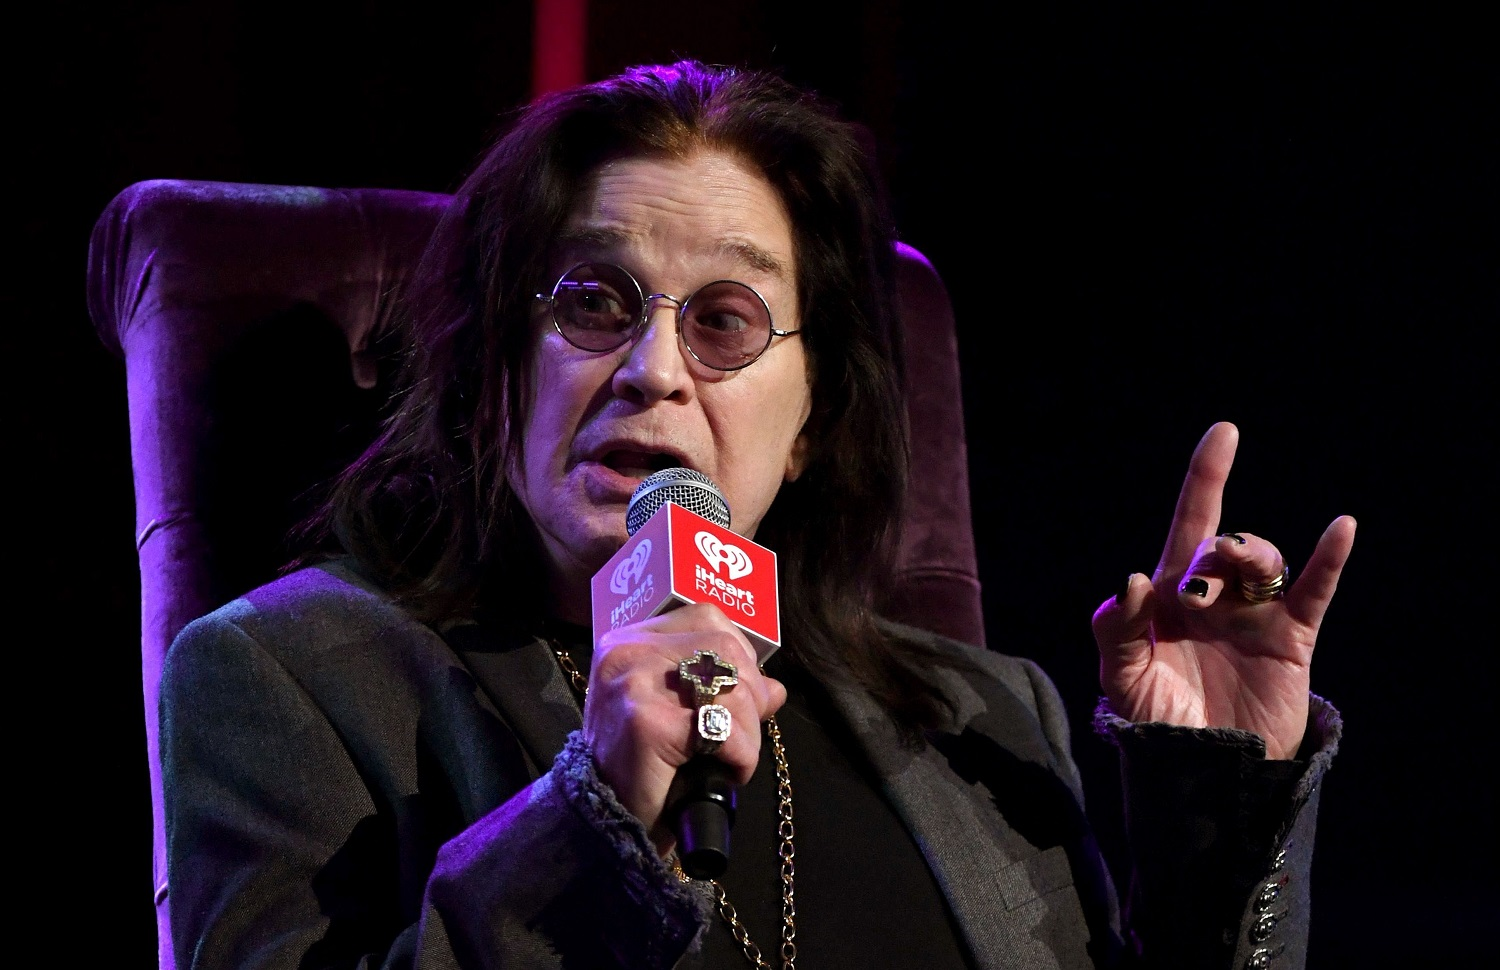 Rock Legend Ozzy Osbourne Is Being Inducted Into a Sports Hall of Fame